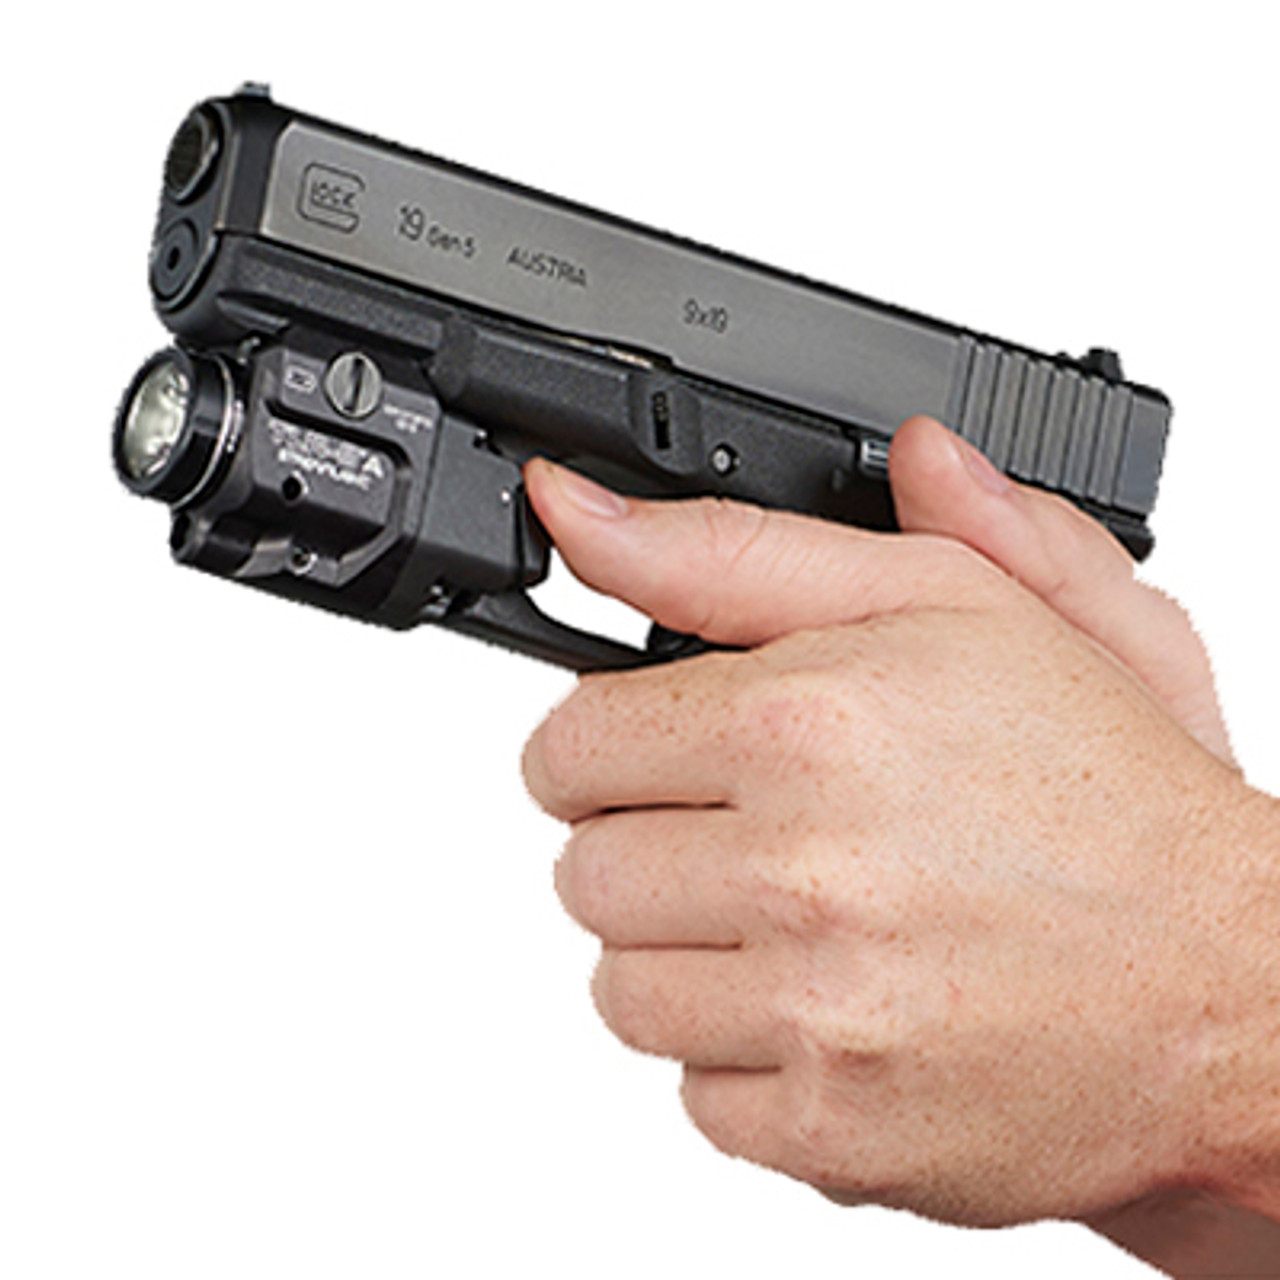 Streamlight - TLR-8®A GUN LIGHT WITH RED LASER AND REAR SWITCH OPTIONS